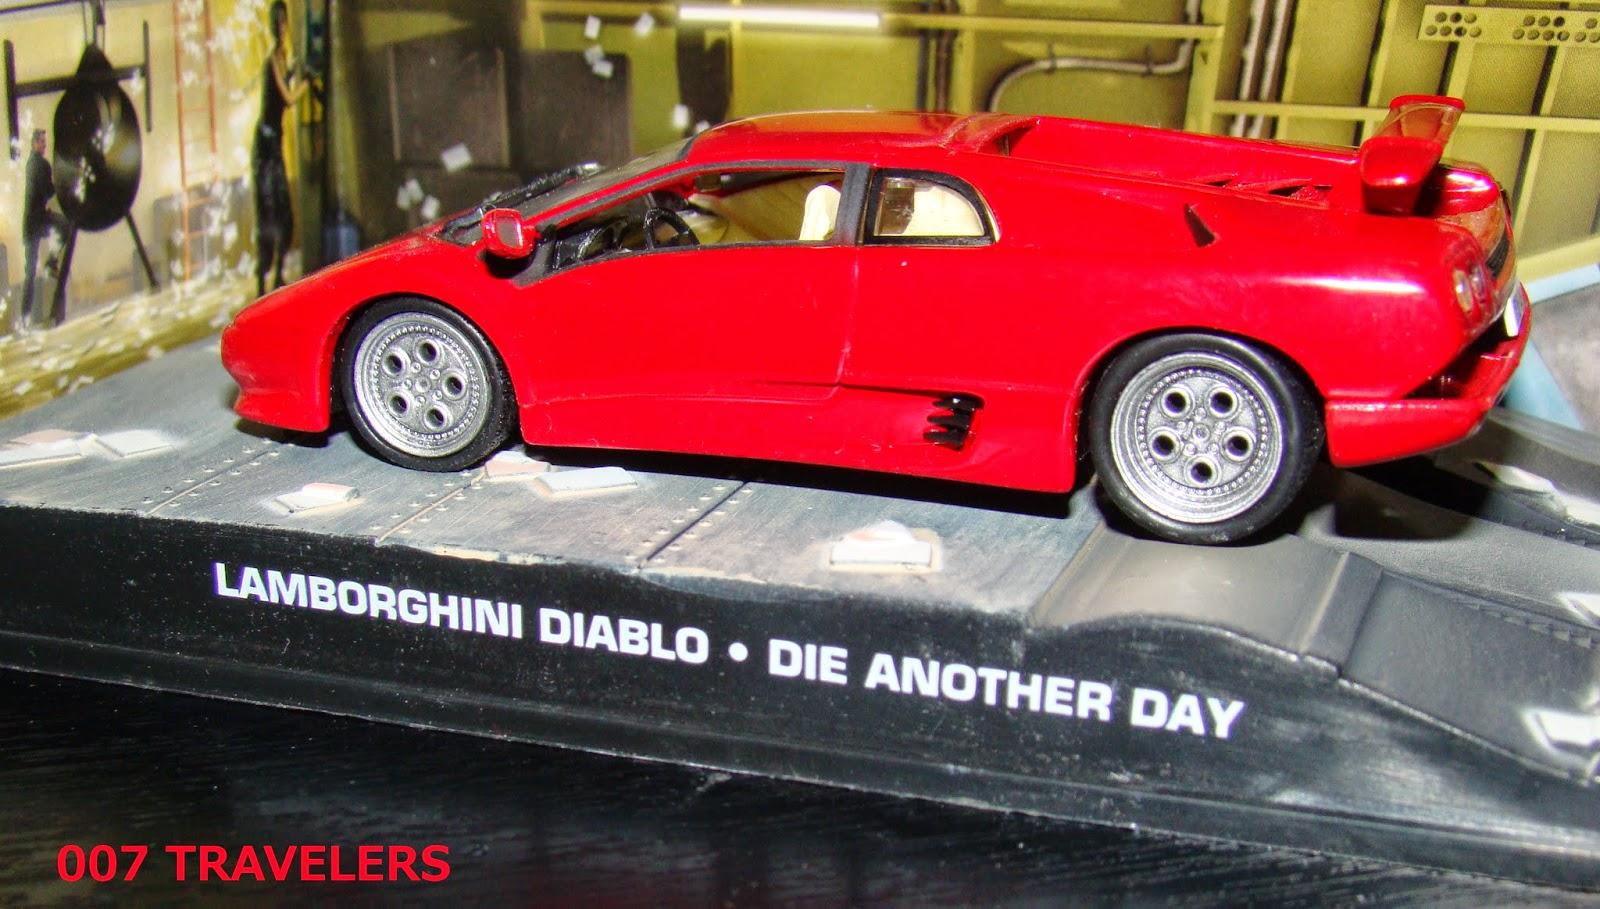 007 Travelers 007 Vehicle Lamborghini Diablo Die Another Day 2002